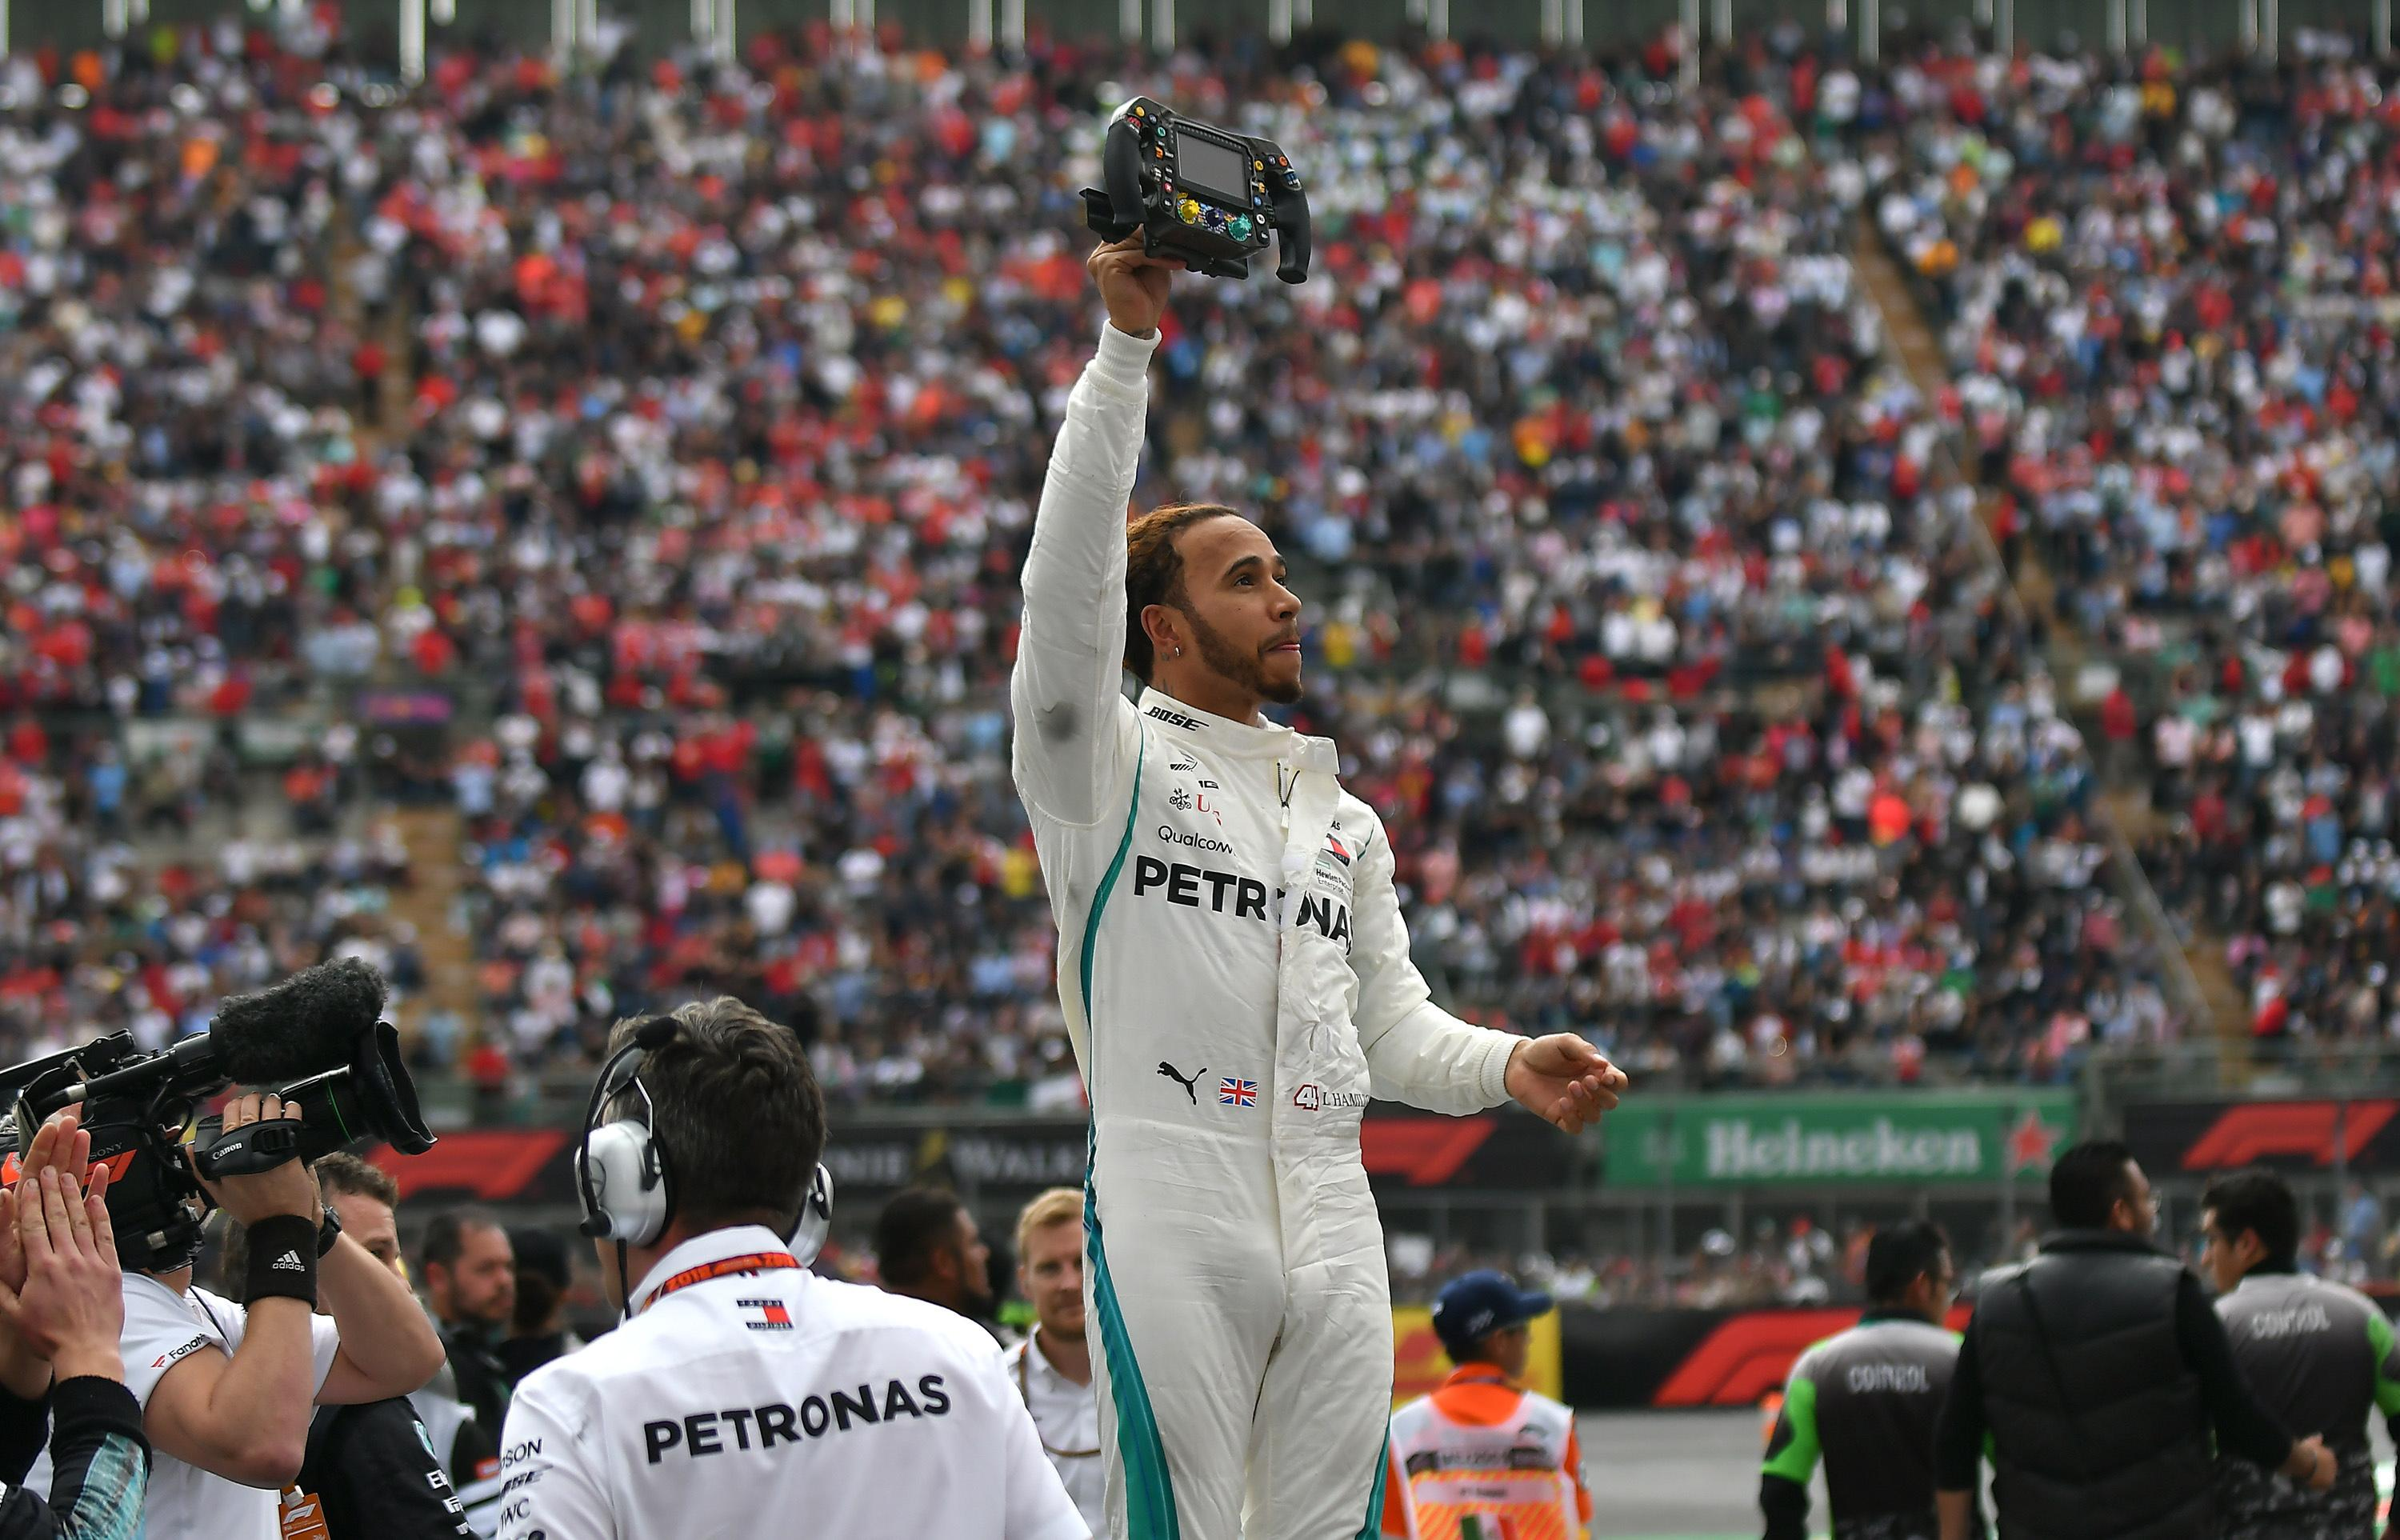 Hamilton secured the F1 drivers' title last out in Mexico City